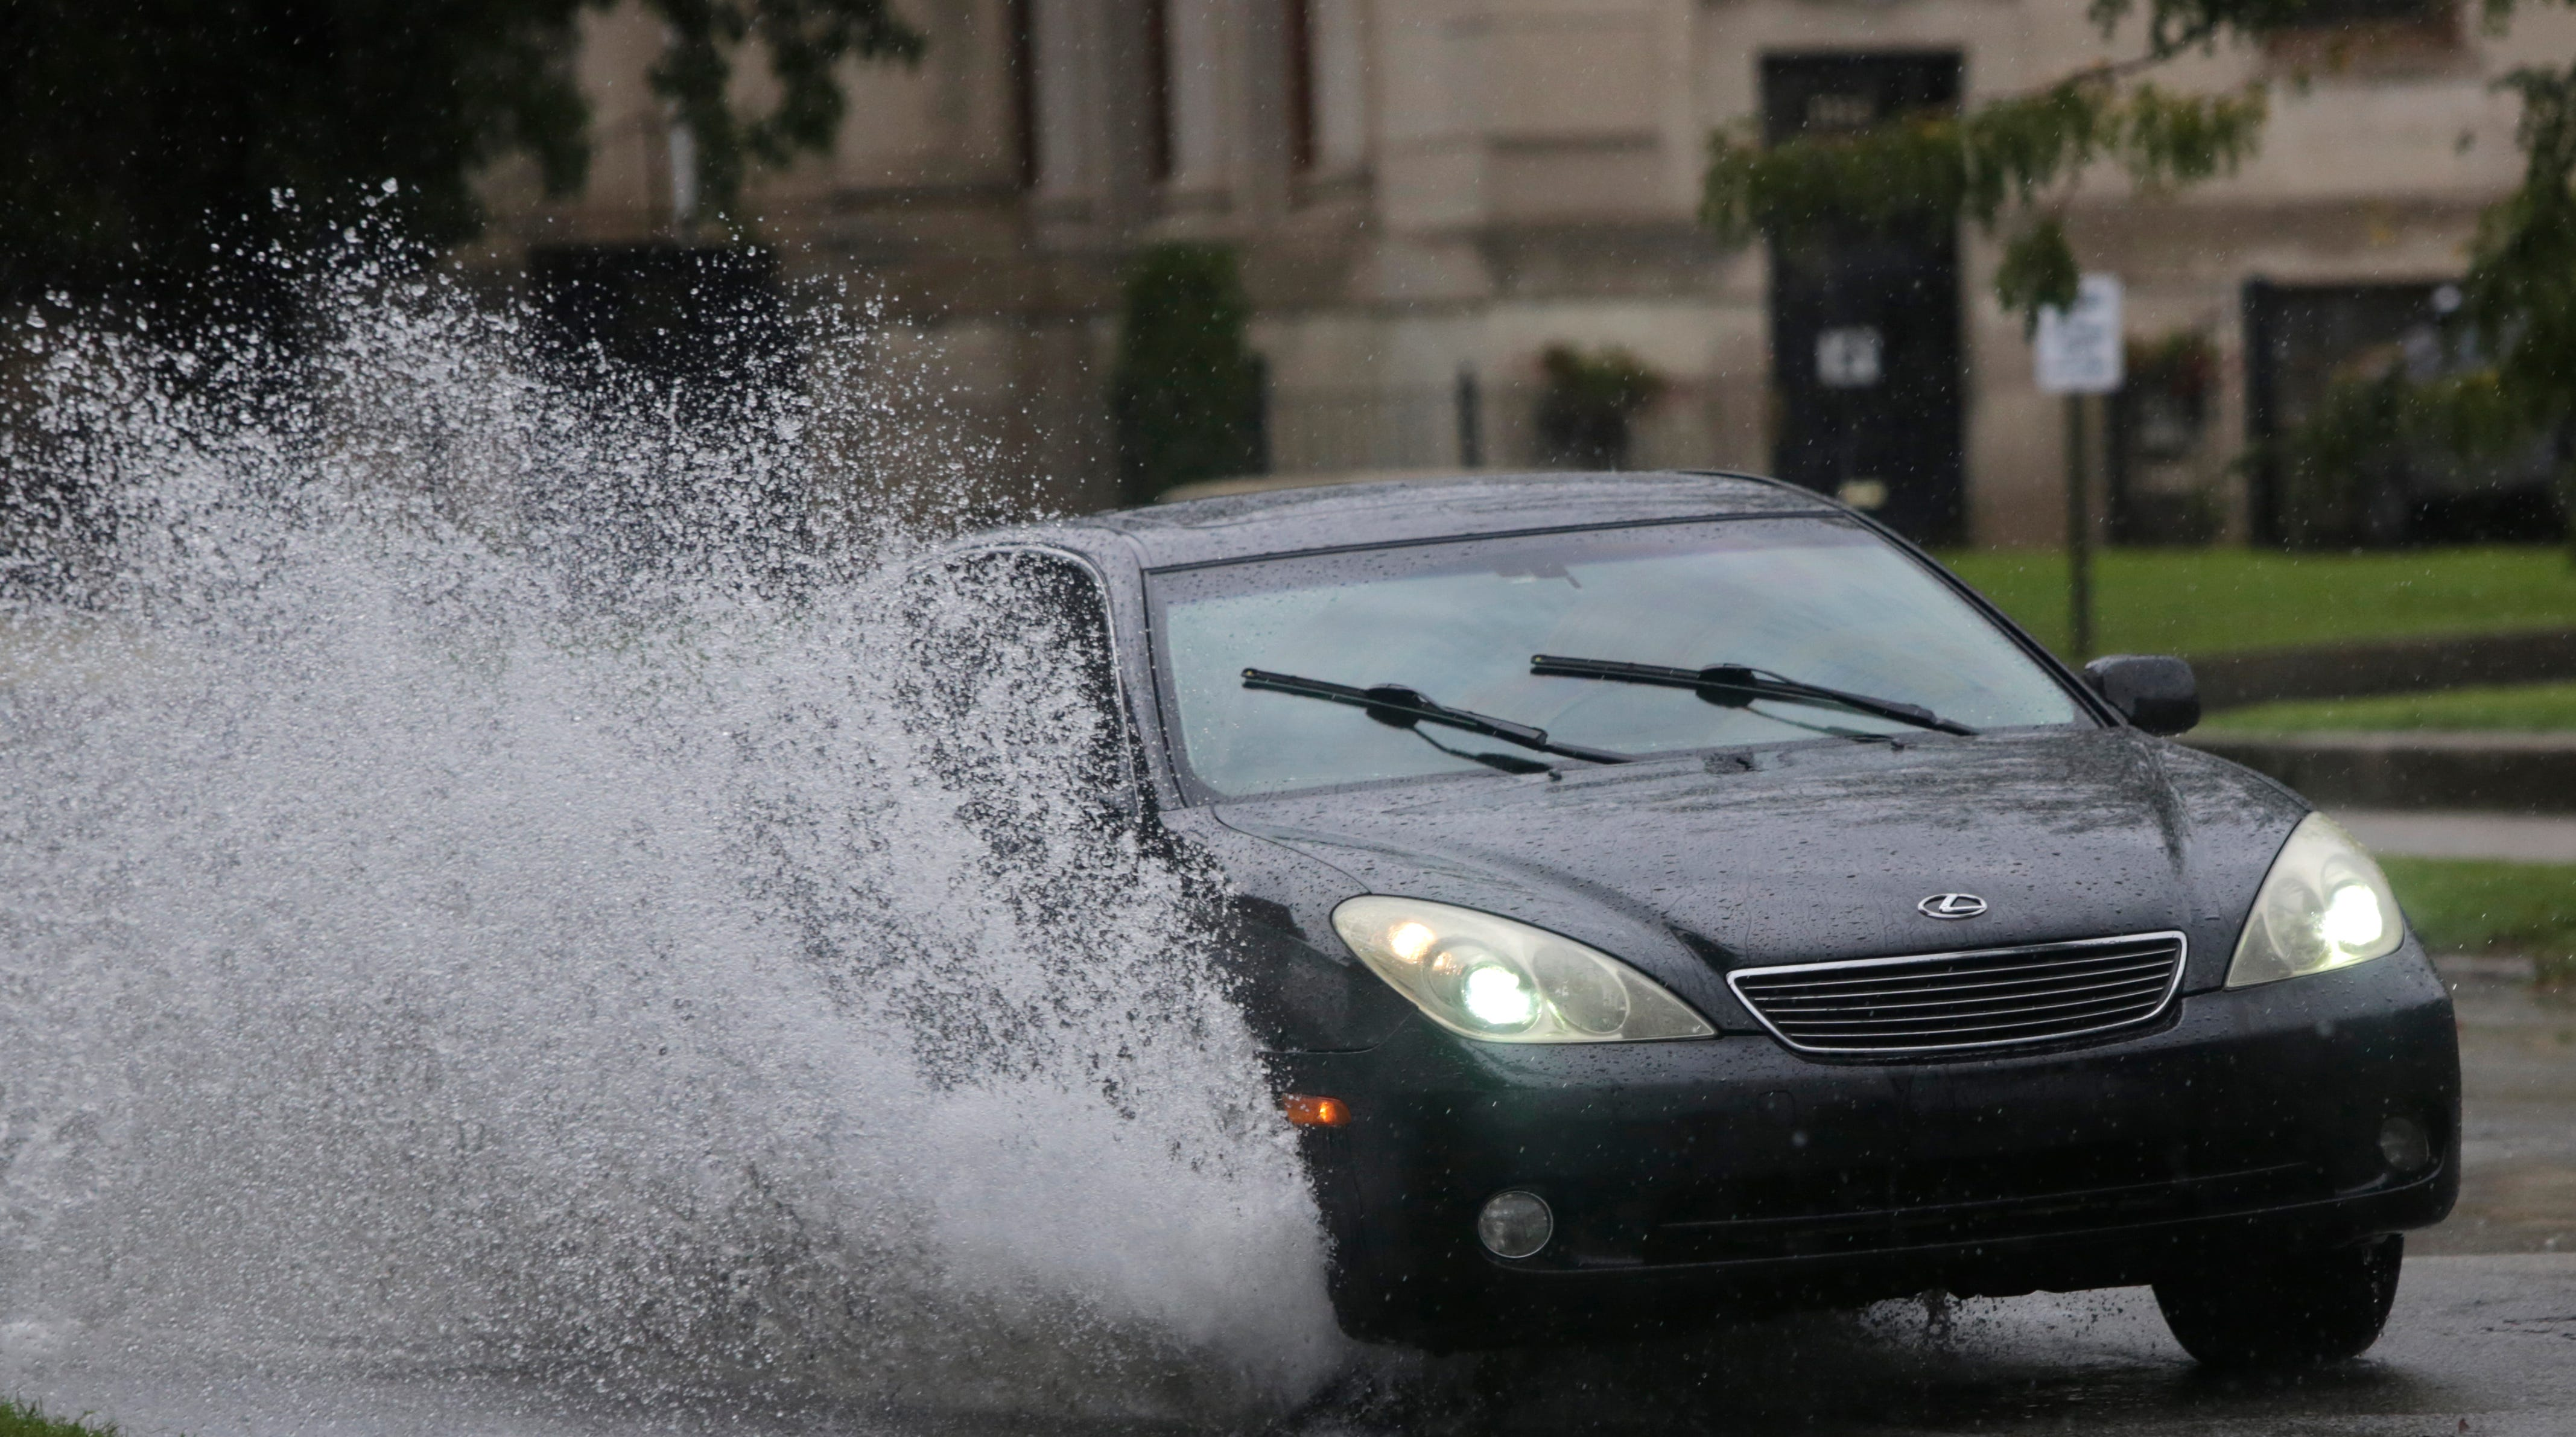 Study confirms what we all knew: Kentuckians can't drive in the rain